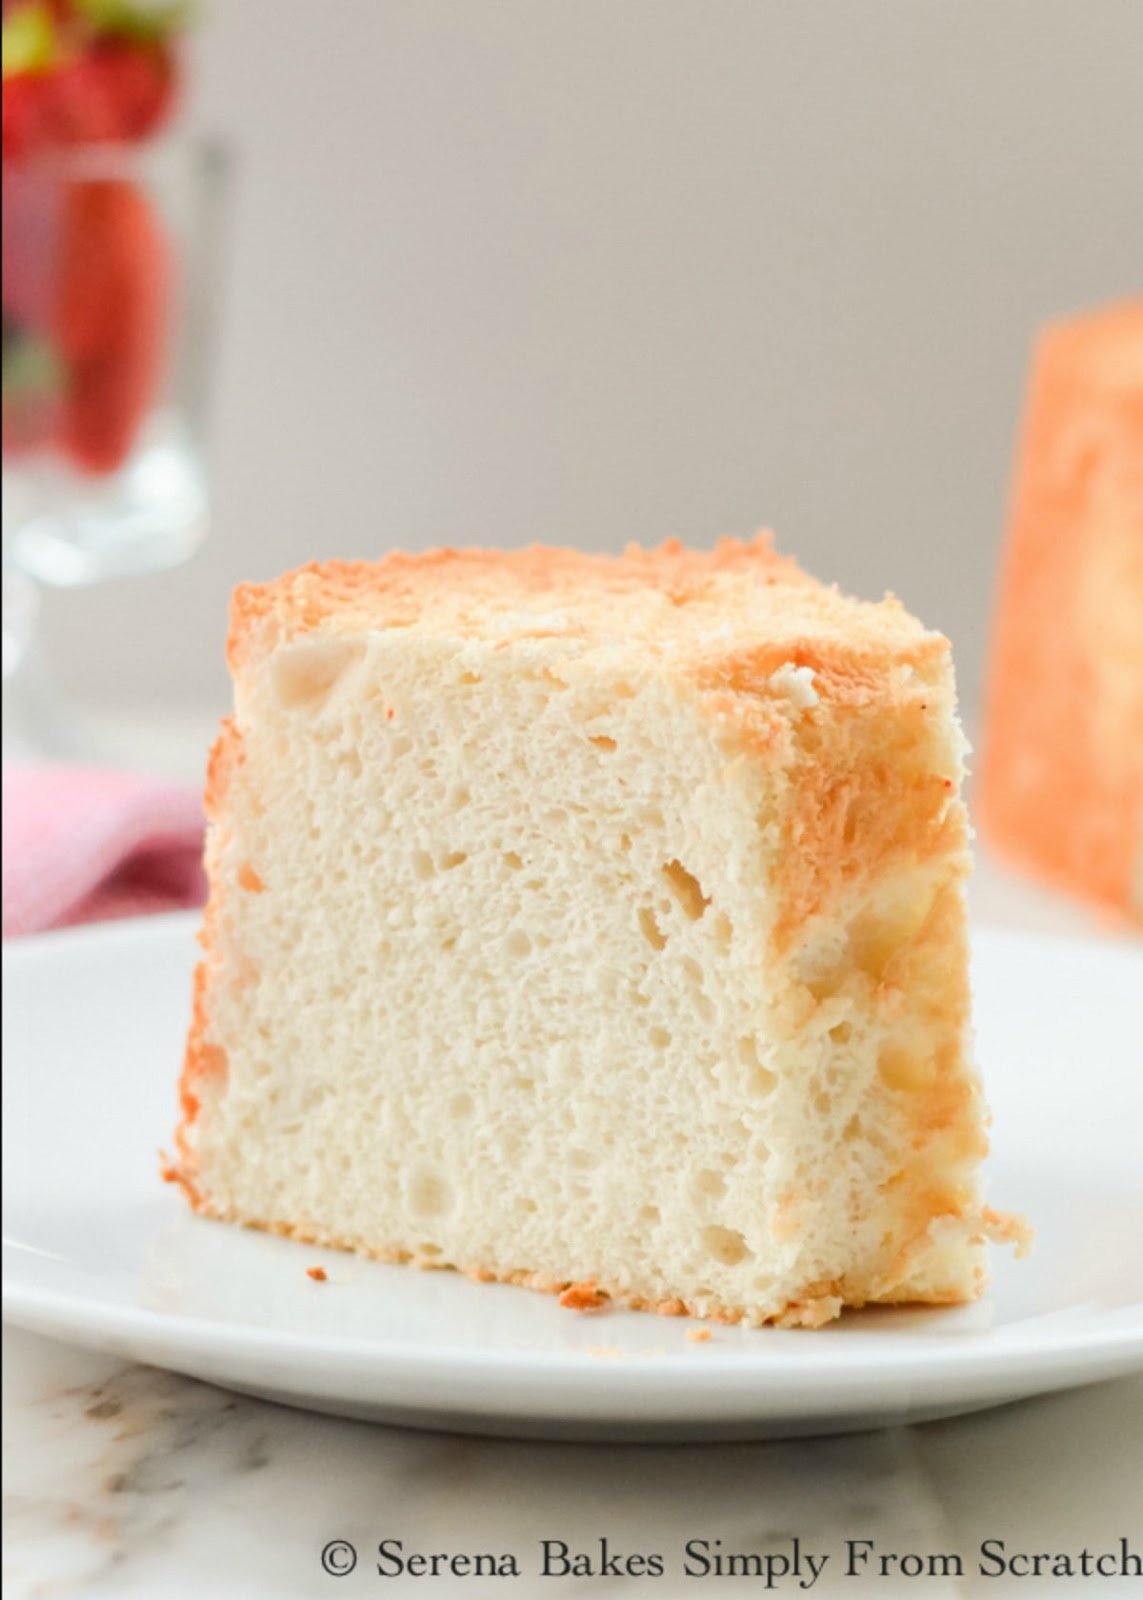 Angel Food Cake recipe from scratch is a light airy and delicious cake recipe perfect with strawberries from Serena Bakes Simply From Scratch.